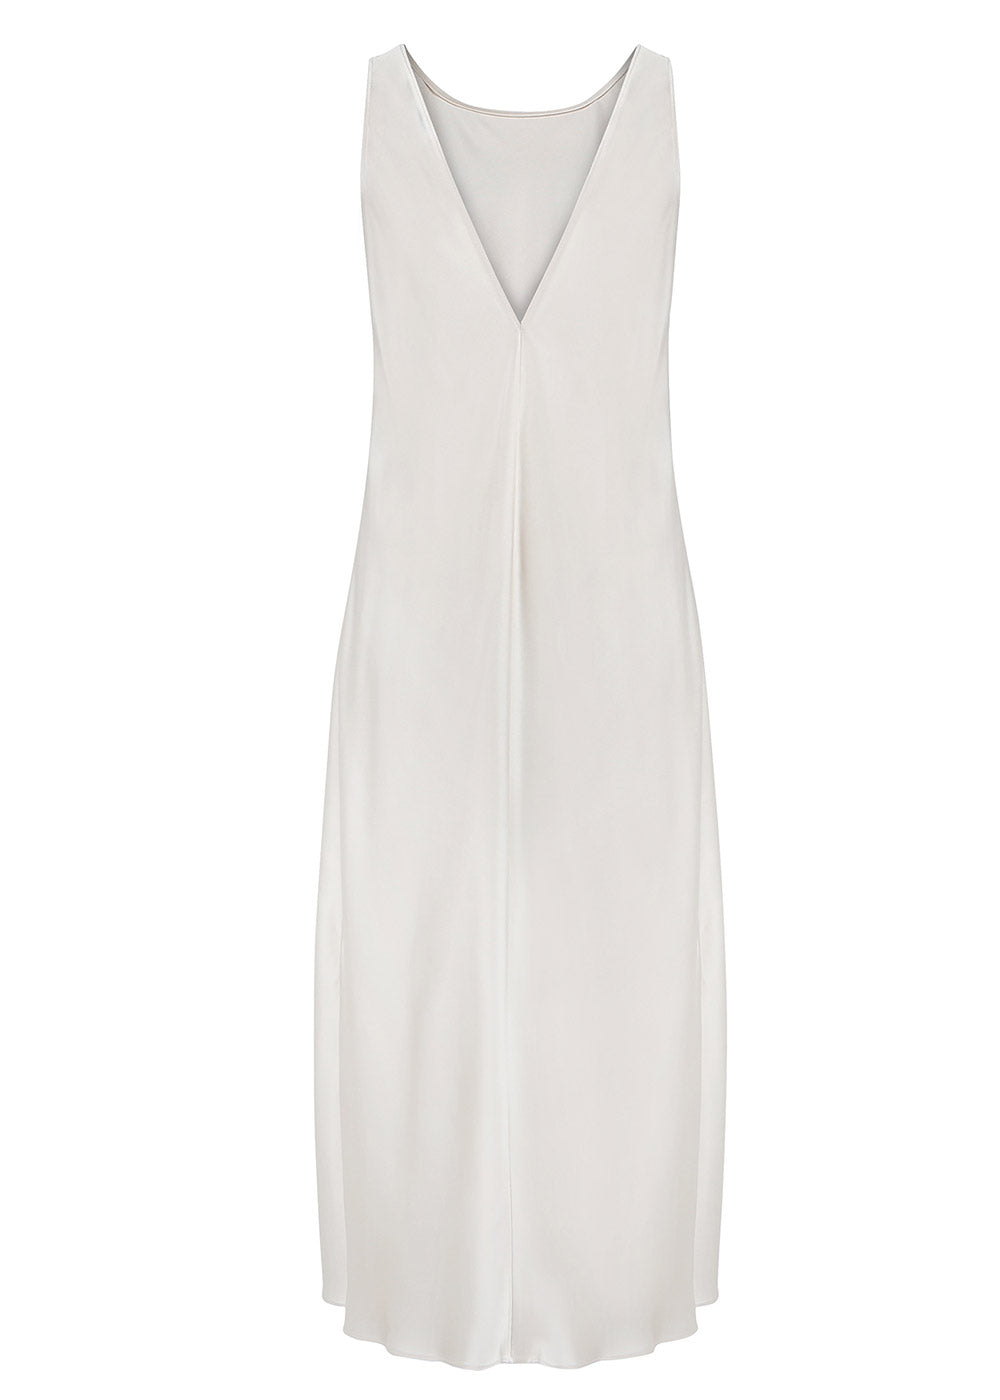 SIDE-SLIT DRESS IVORY